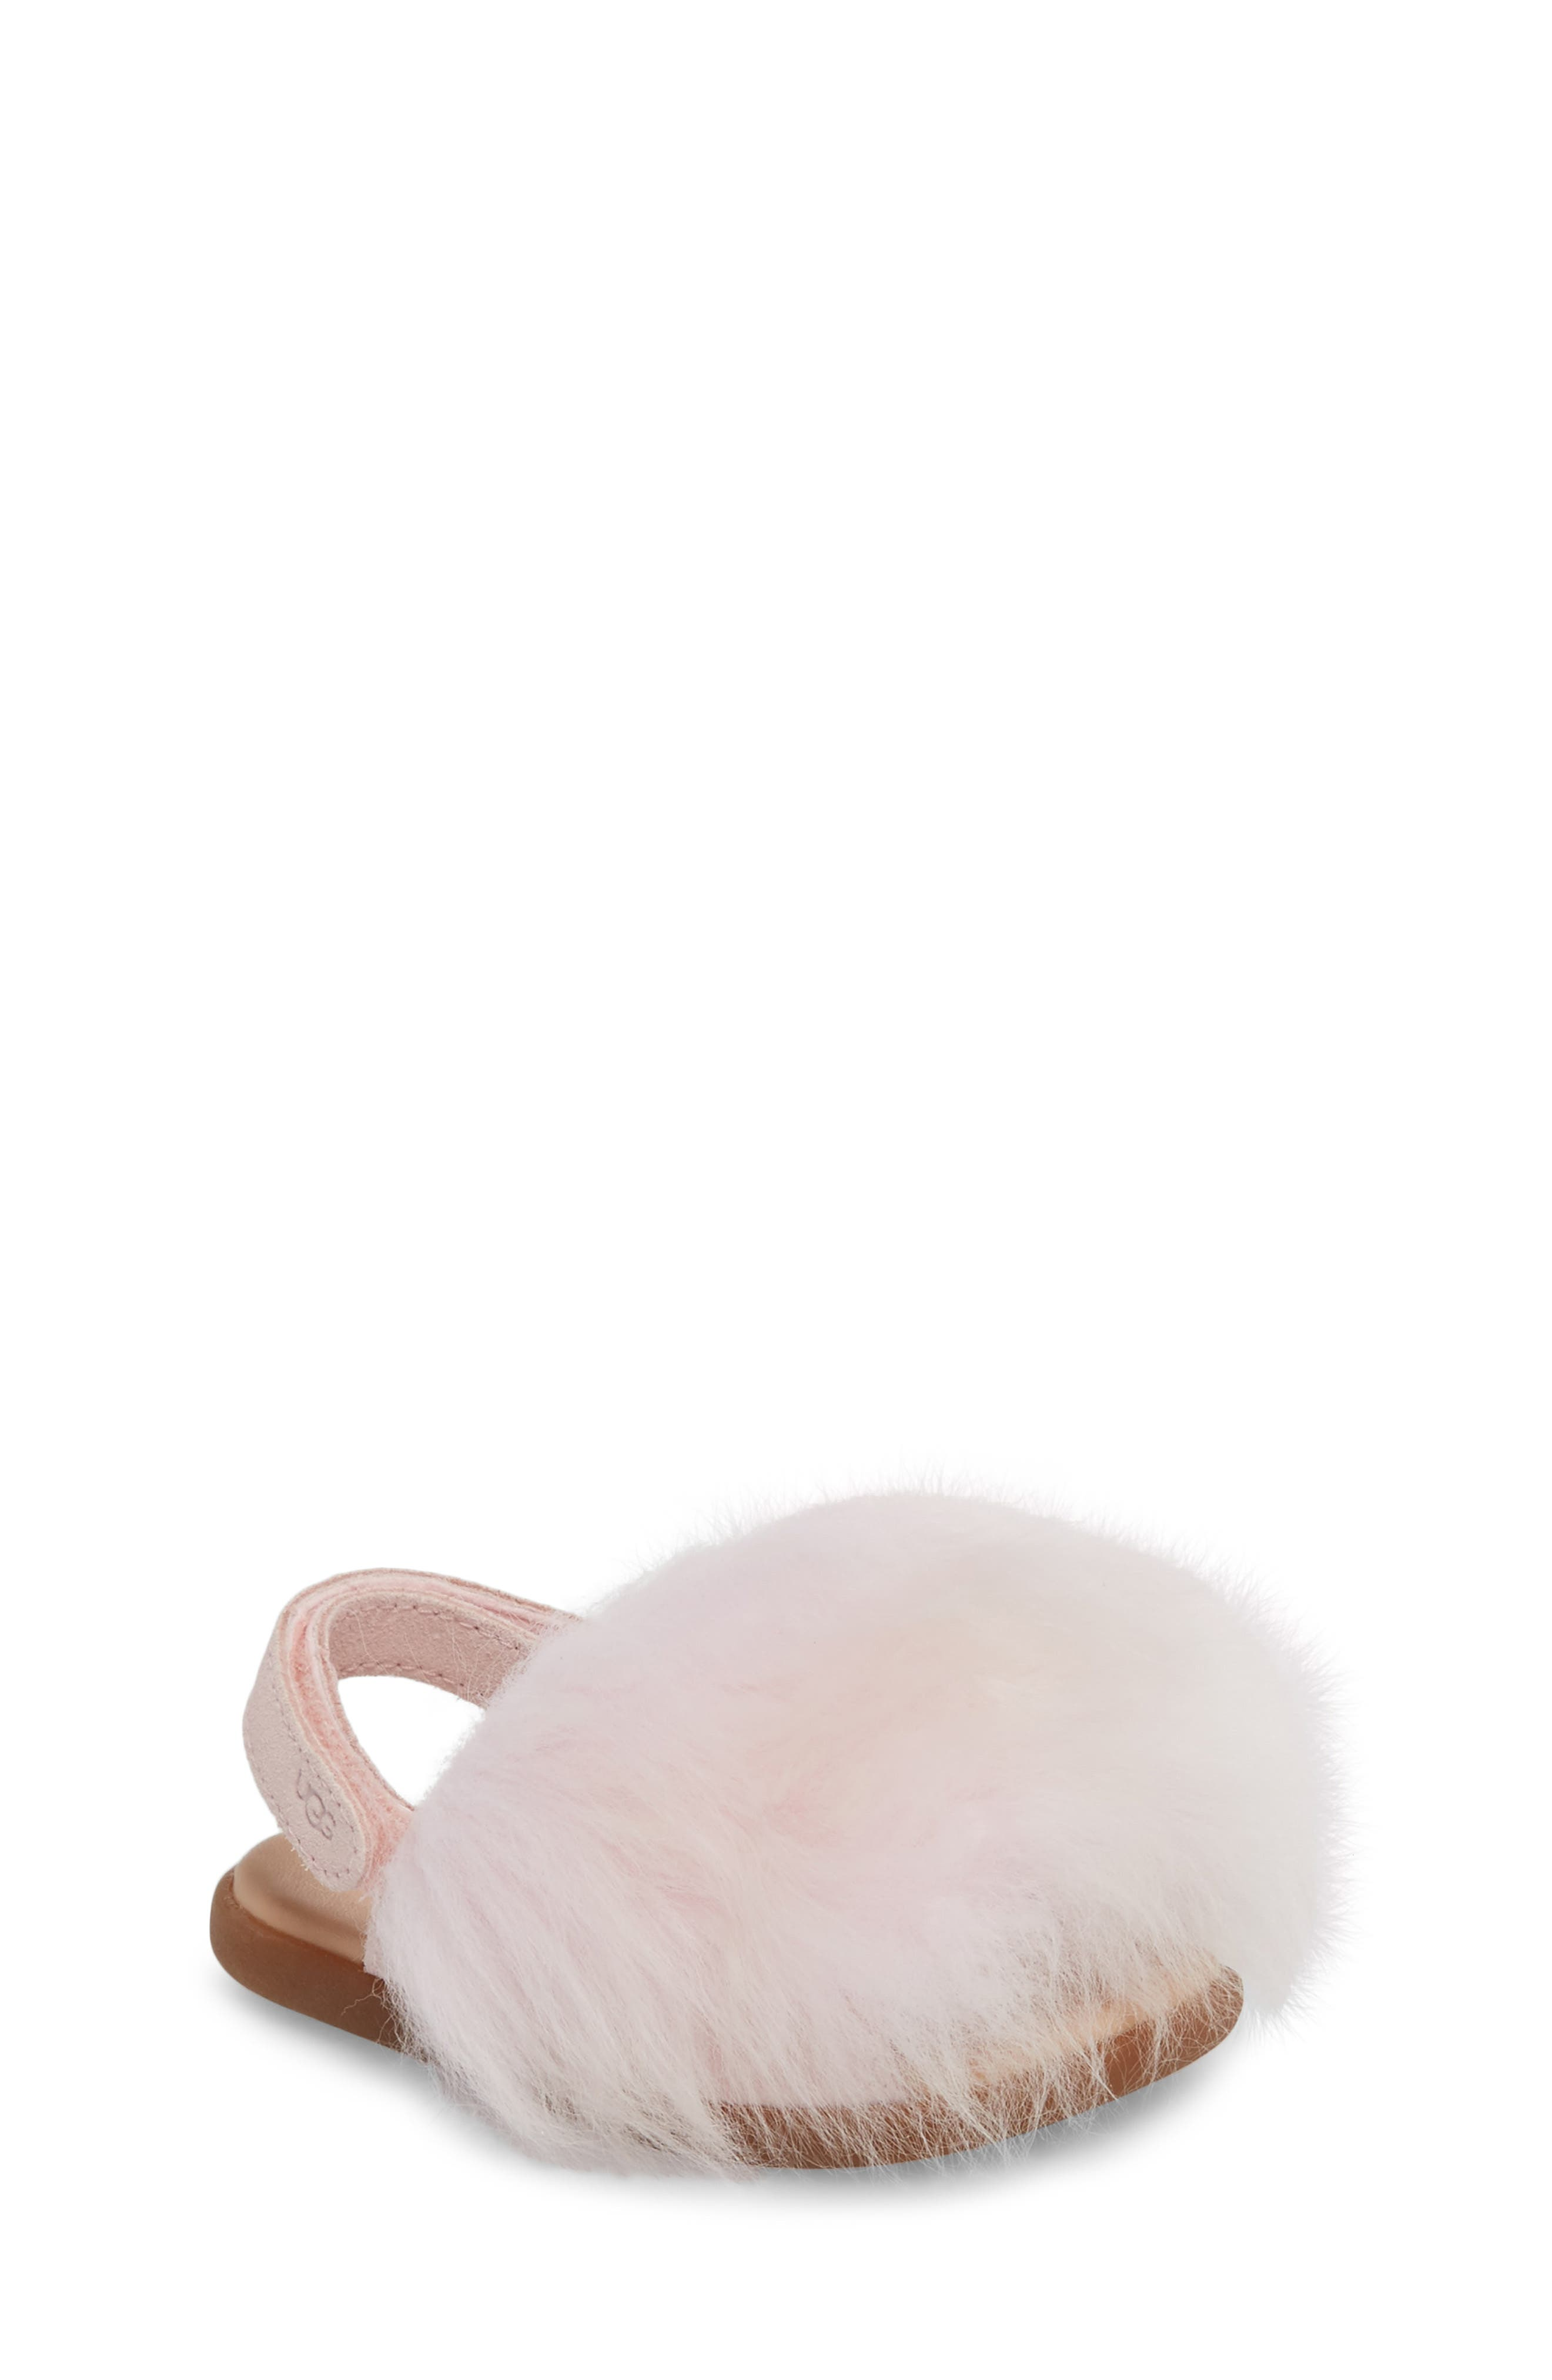 Holly Genuine Shearling Sandal,                         Main,                         color, SEASHELL PINK